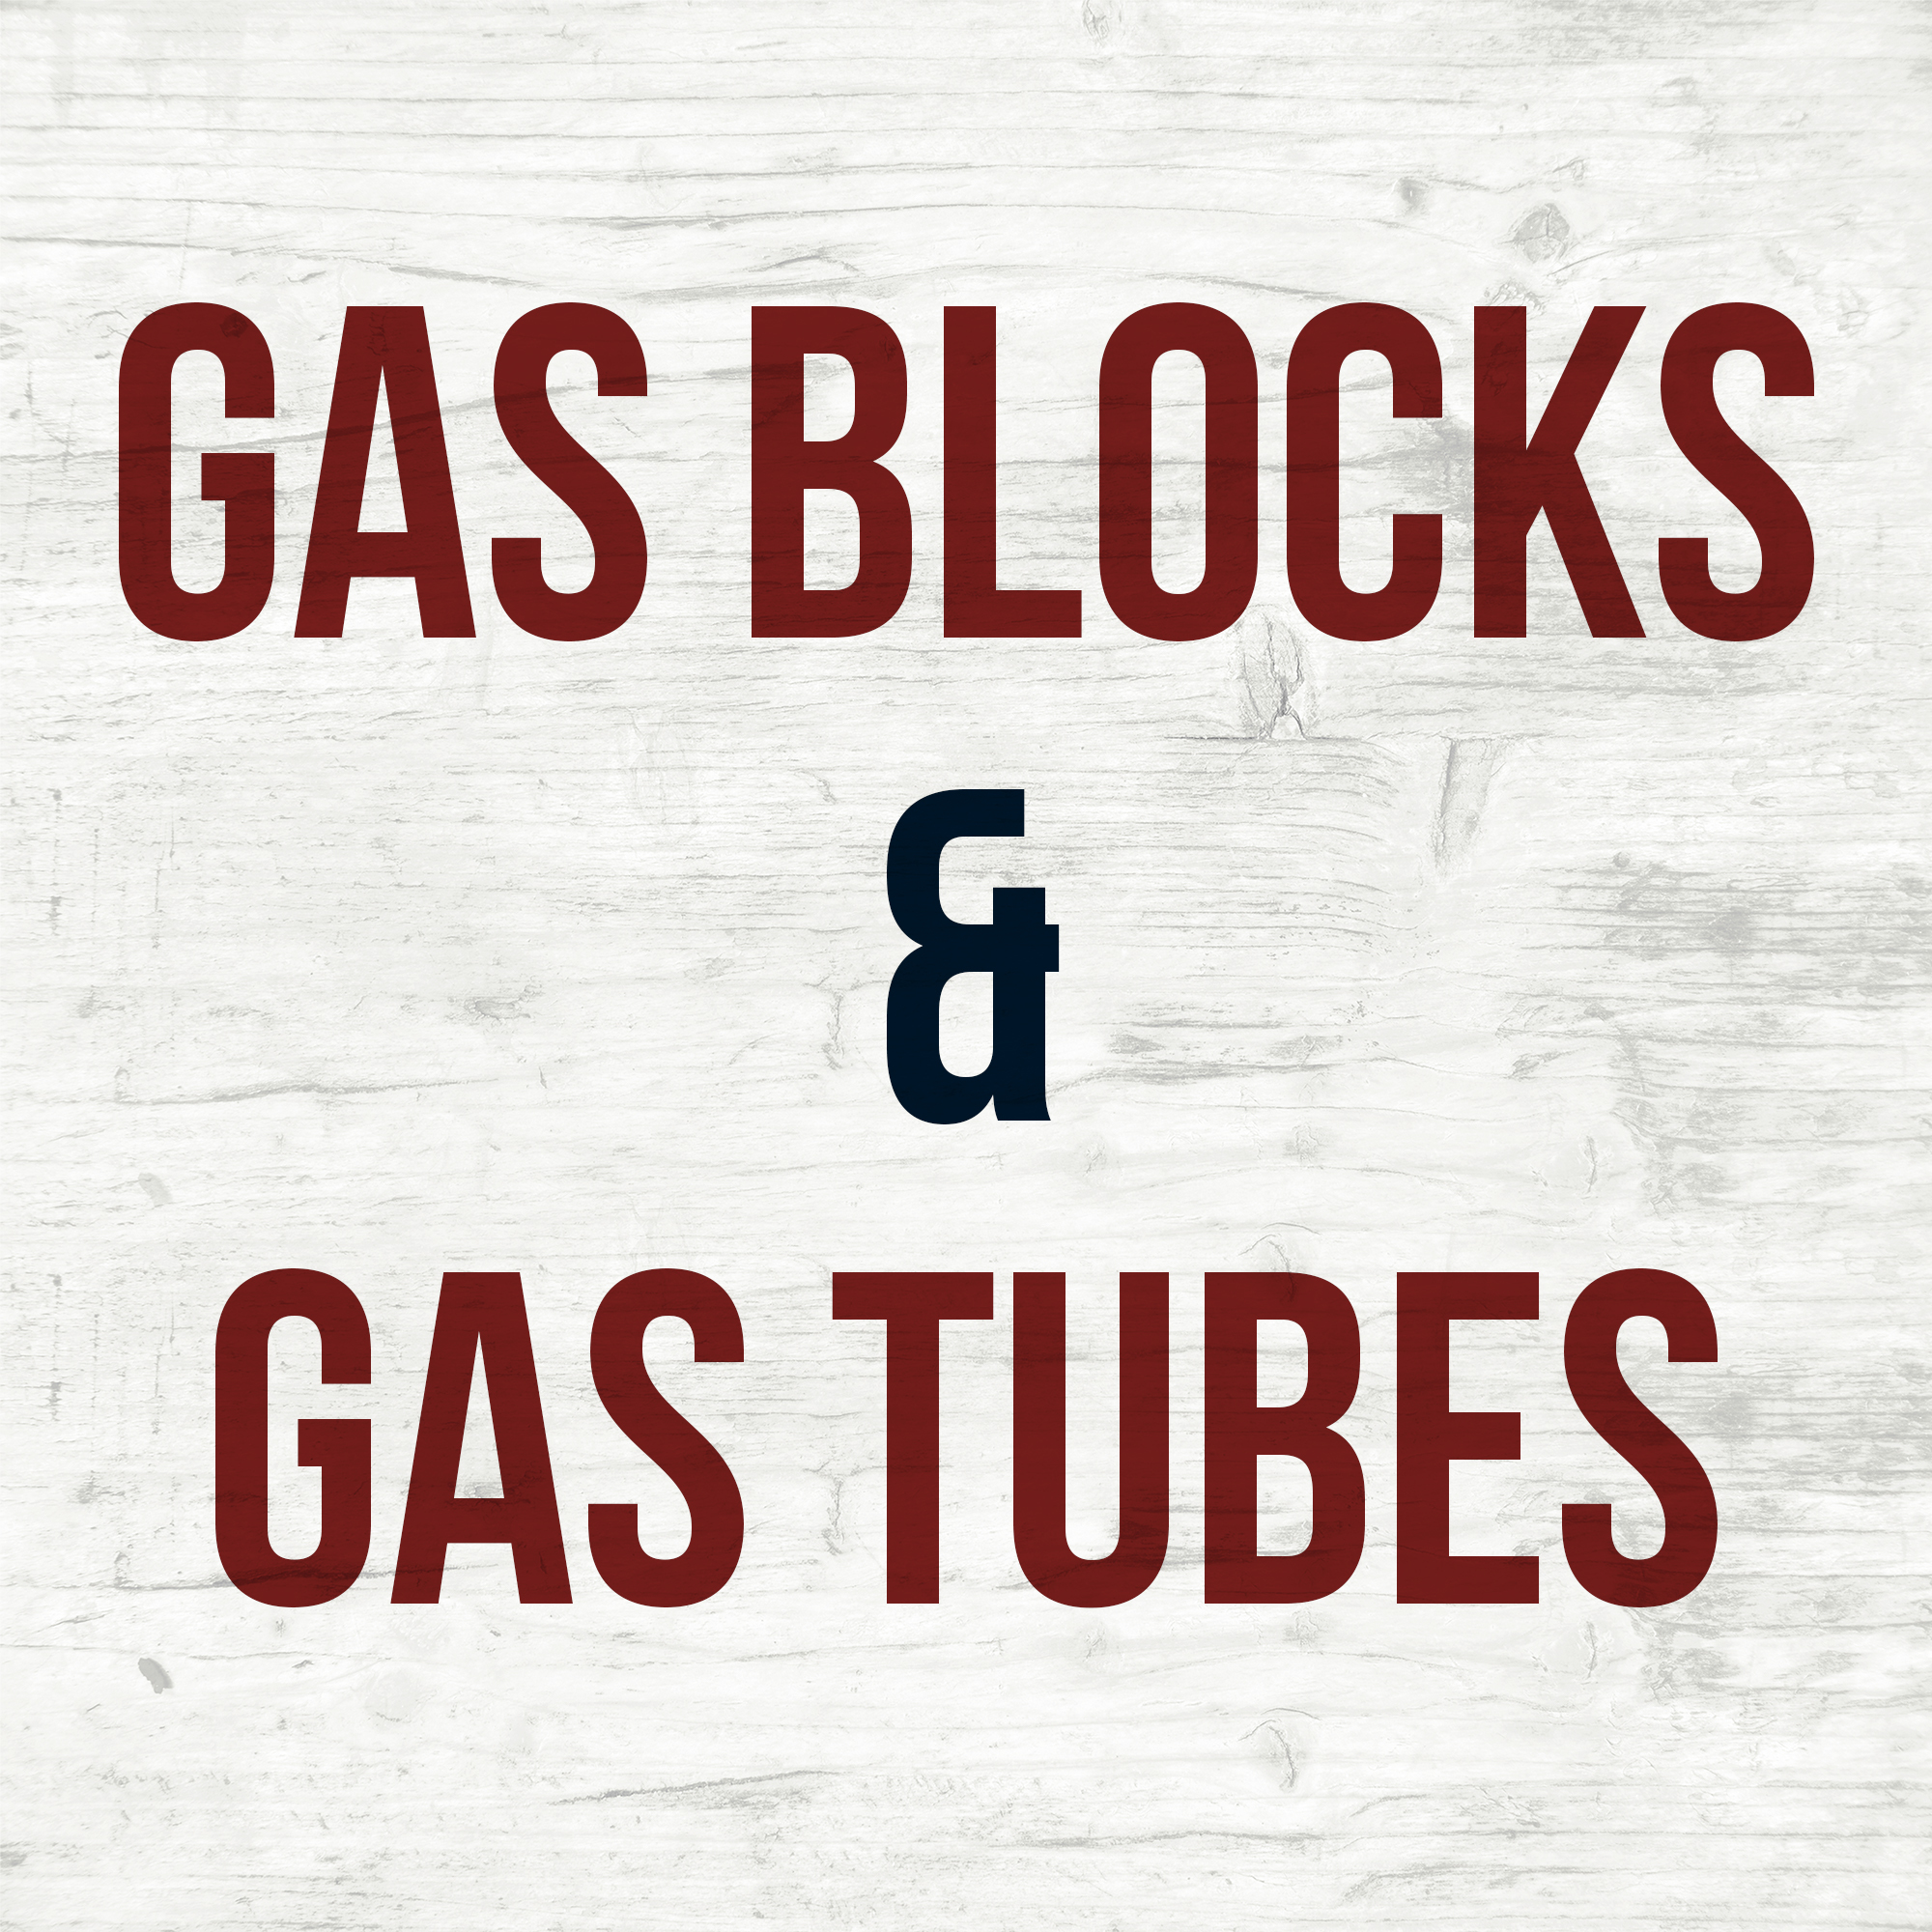 Gas Blocks & Gas Tubes